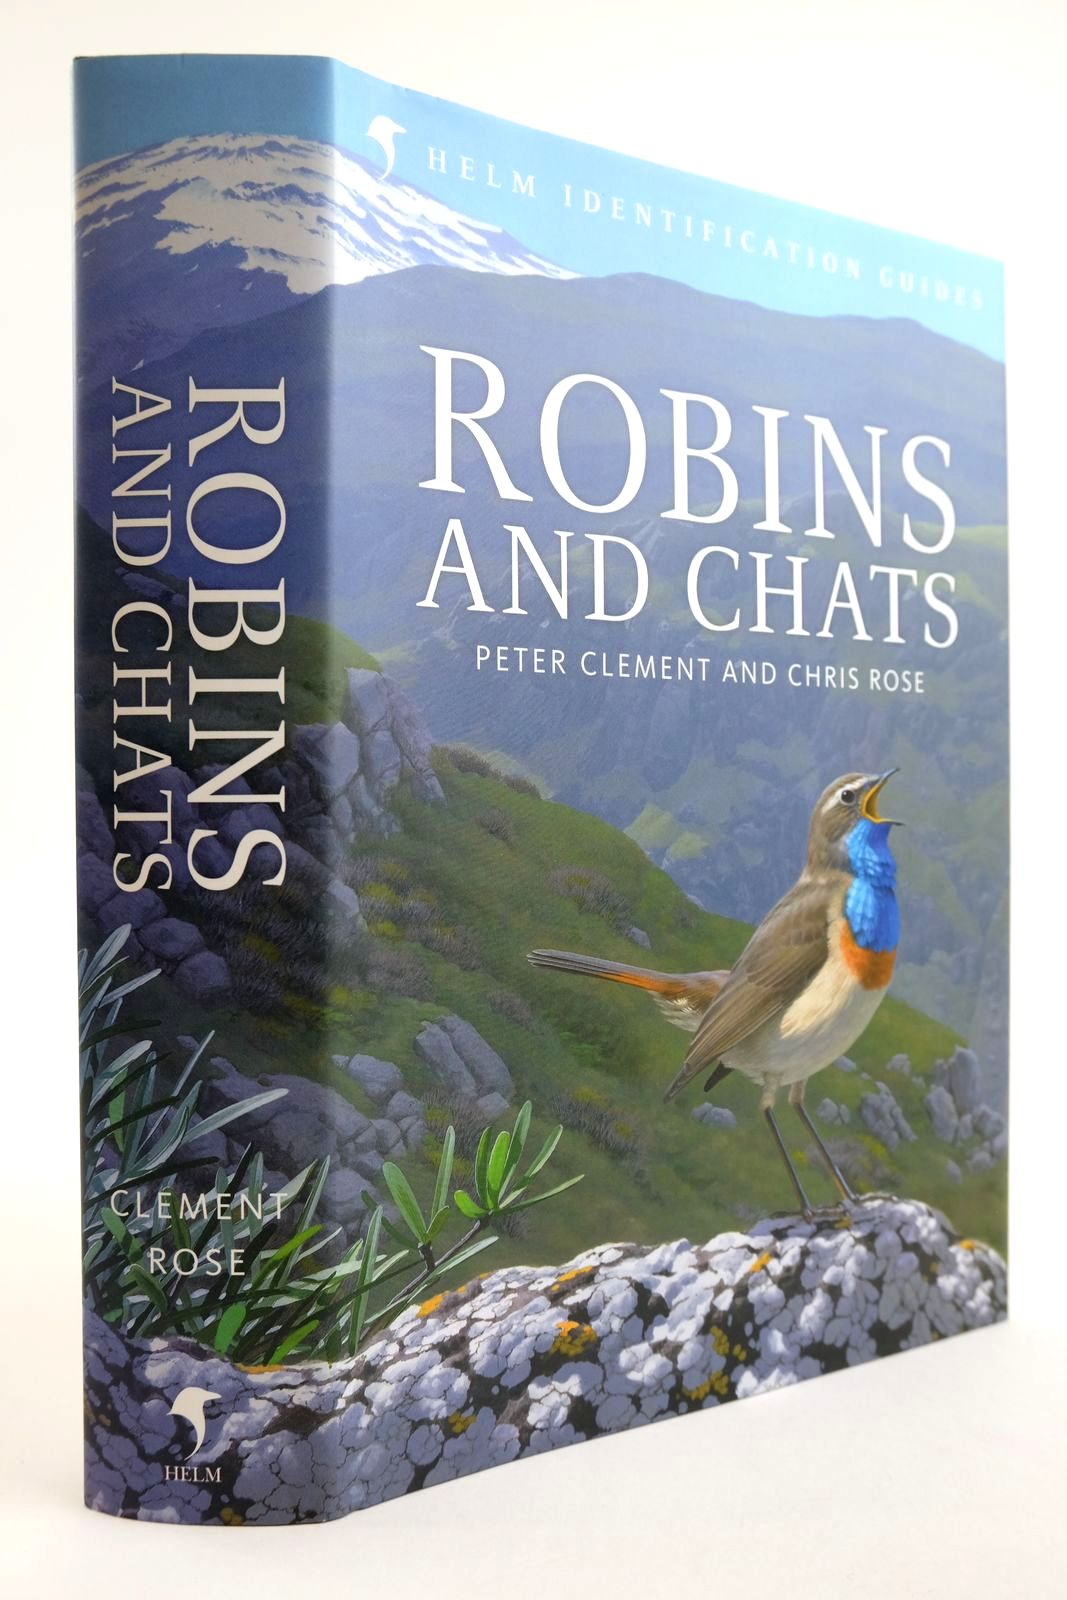 Photo of ROBINS AND CHATS written by Clement, Peter Rose, Chris published by Christopher Helm (STOCK CODE: 2133637)  for sale by Stella & Rose's Books